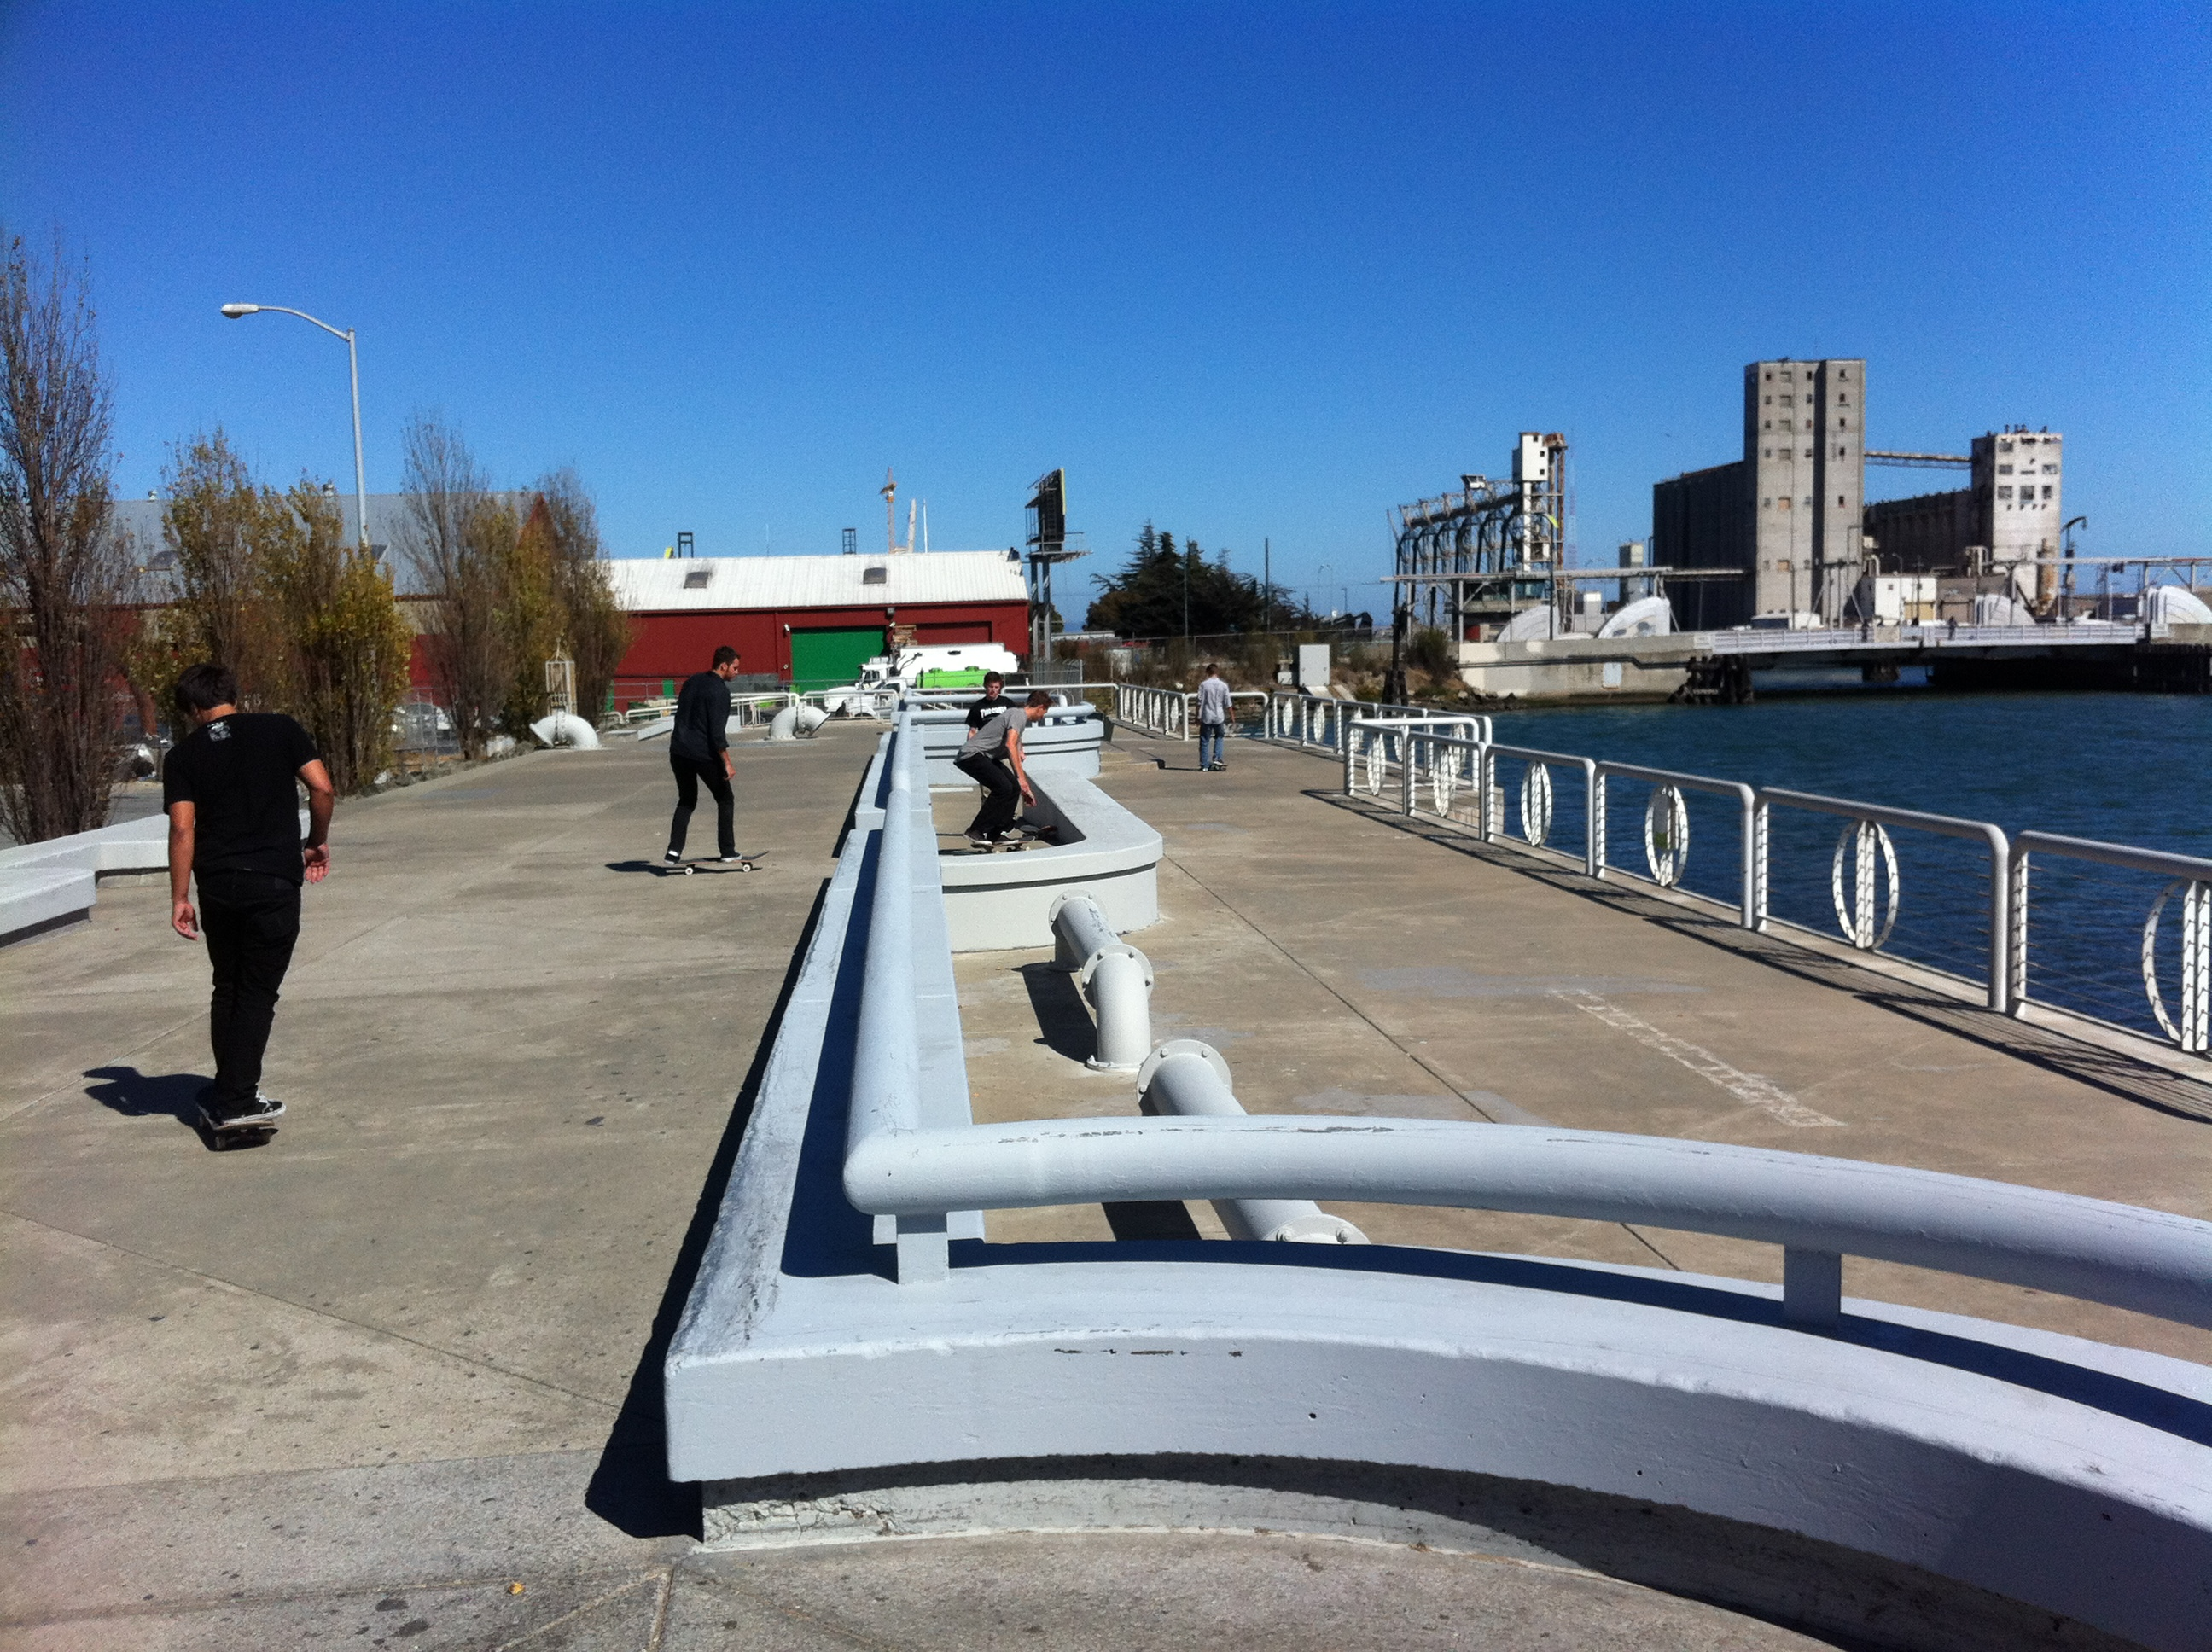 Download image Famous Skate Spots In San Francisco PC, Android, iPhone ...